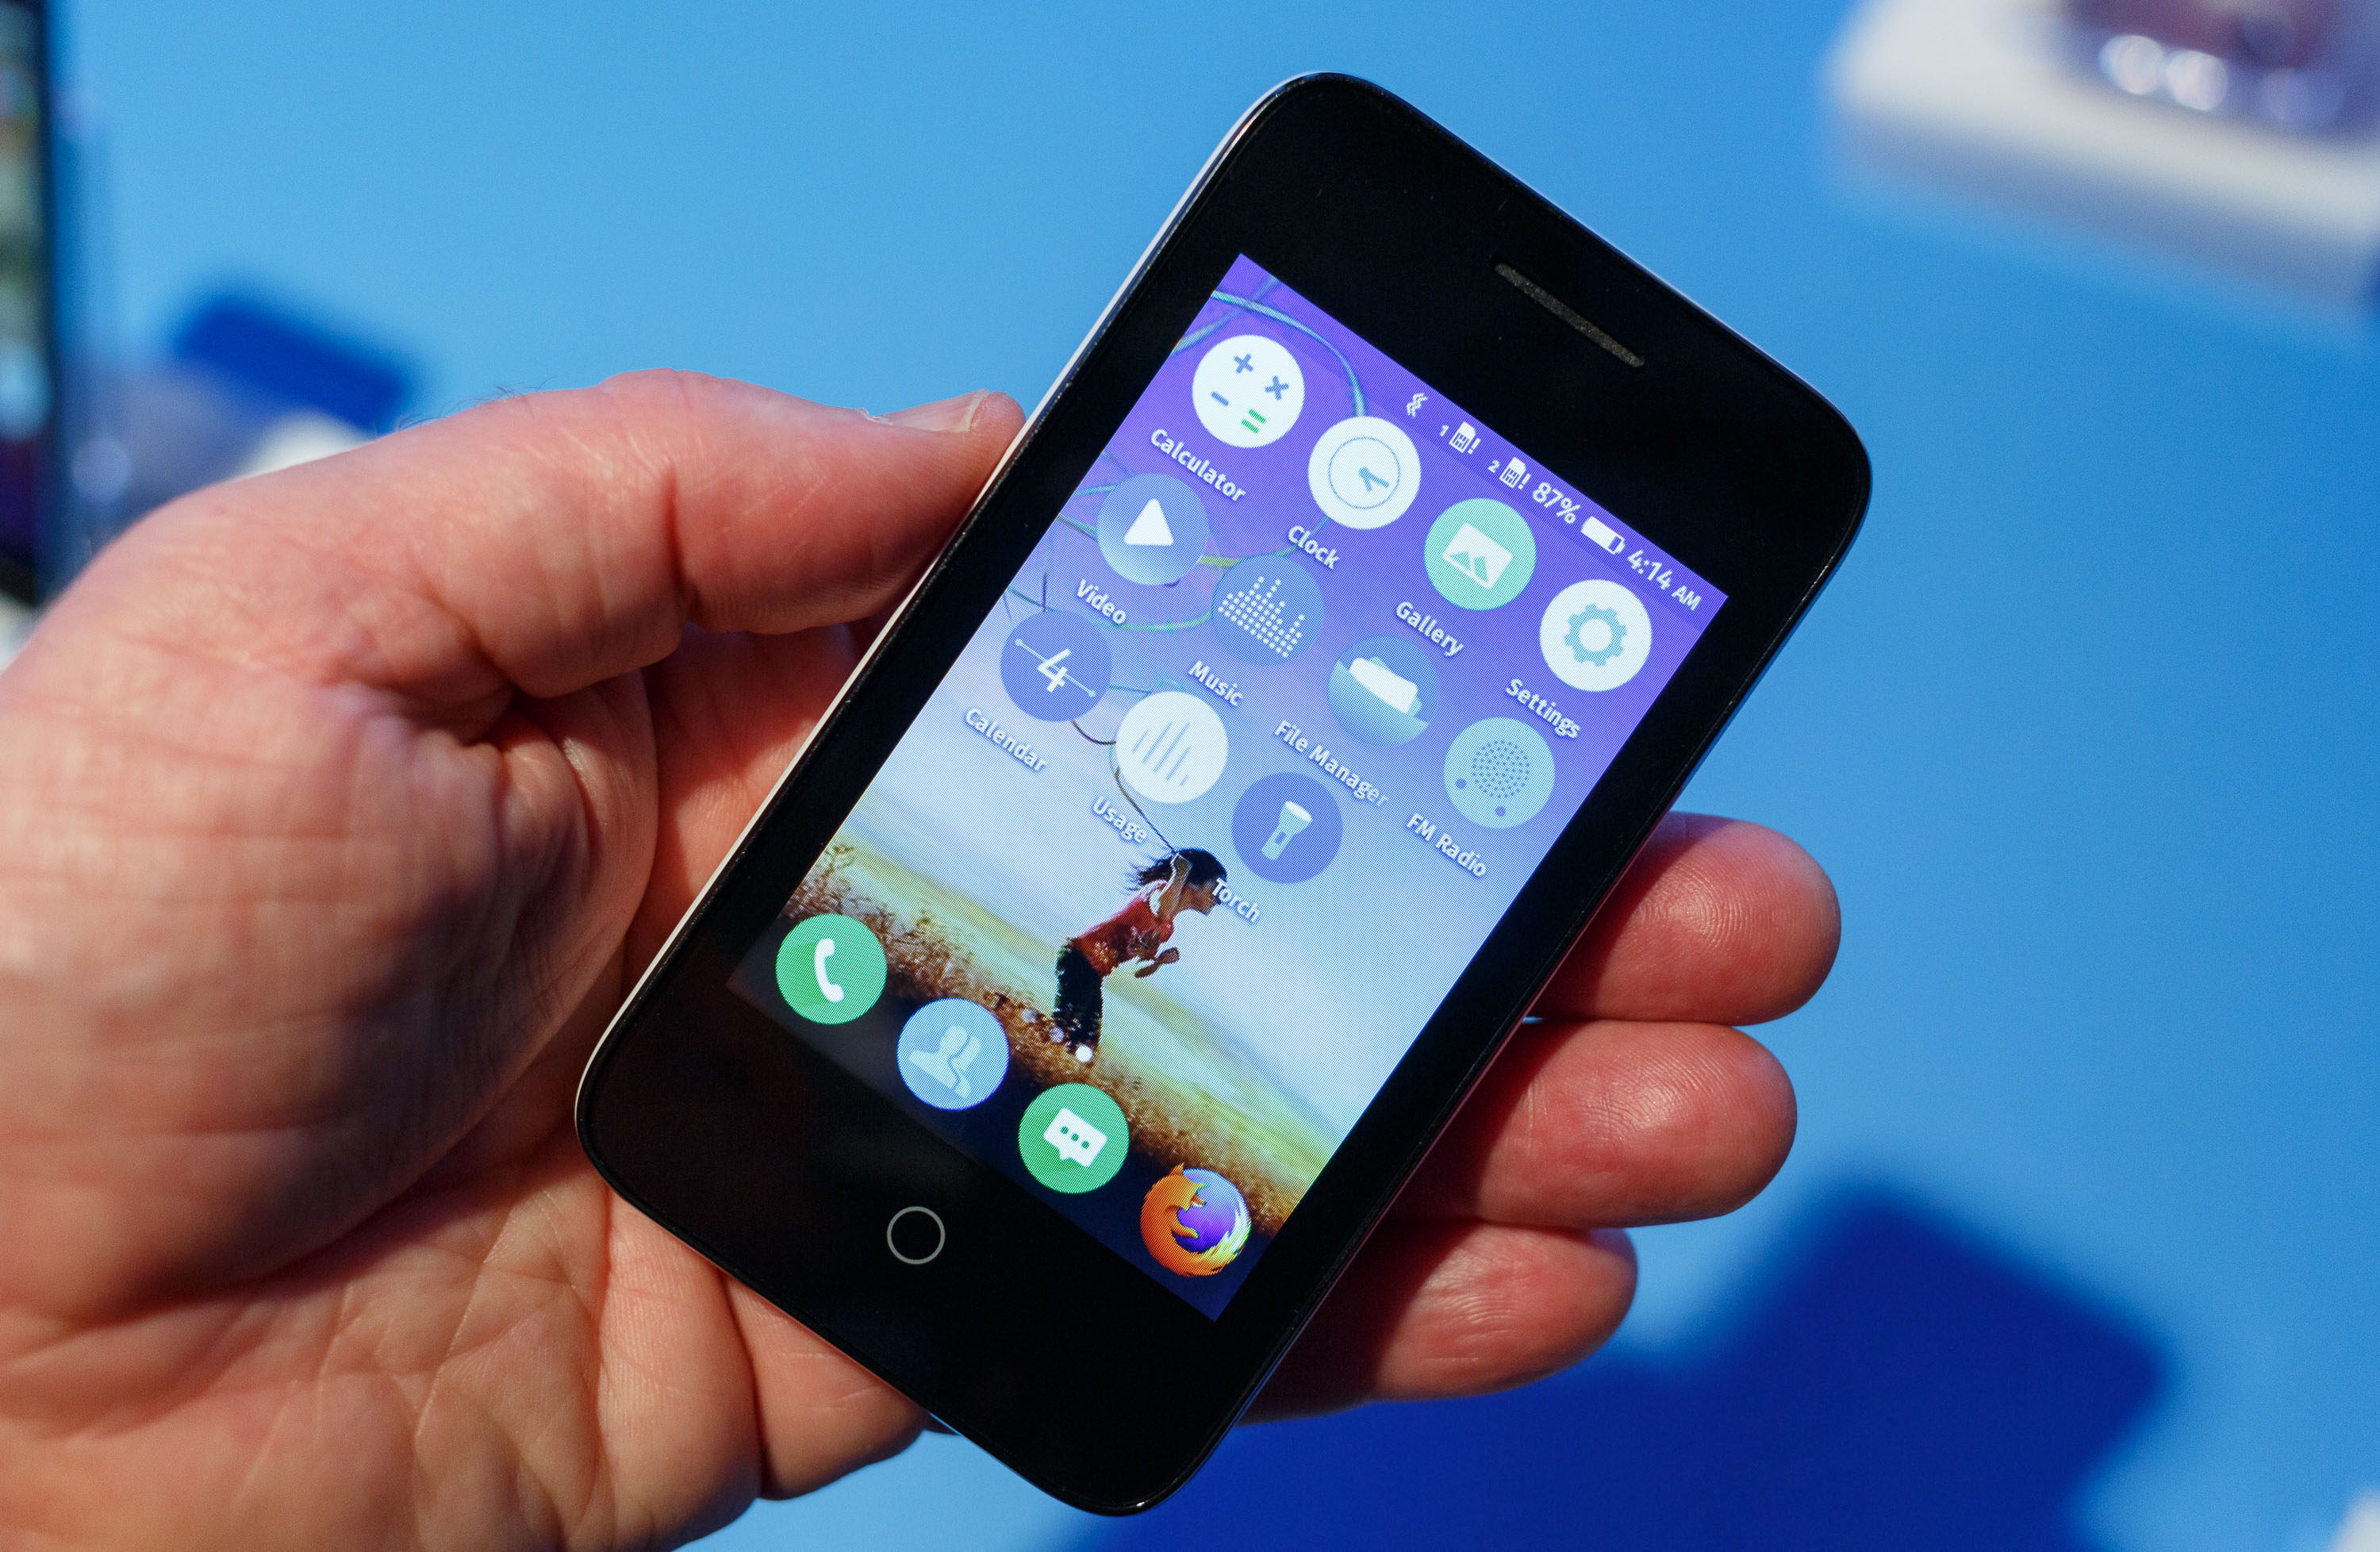 The Orange Klif is Firefox OS phone that the French carrier will sell in 13 African and Middle Eastern countries starting in the second quarter of 2015. The price of up to $40 includes six months of voice, text, and data service.